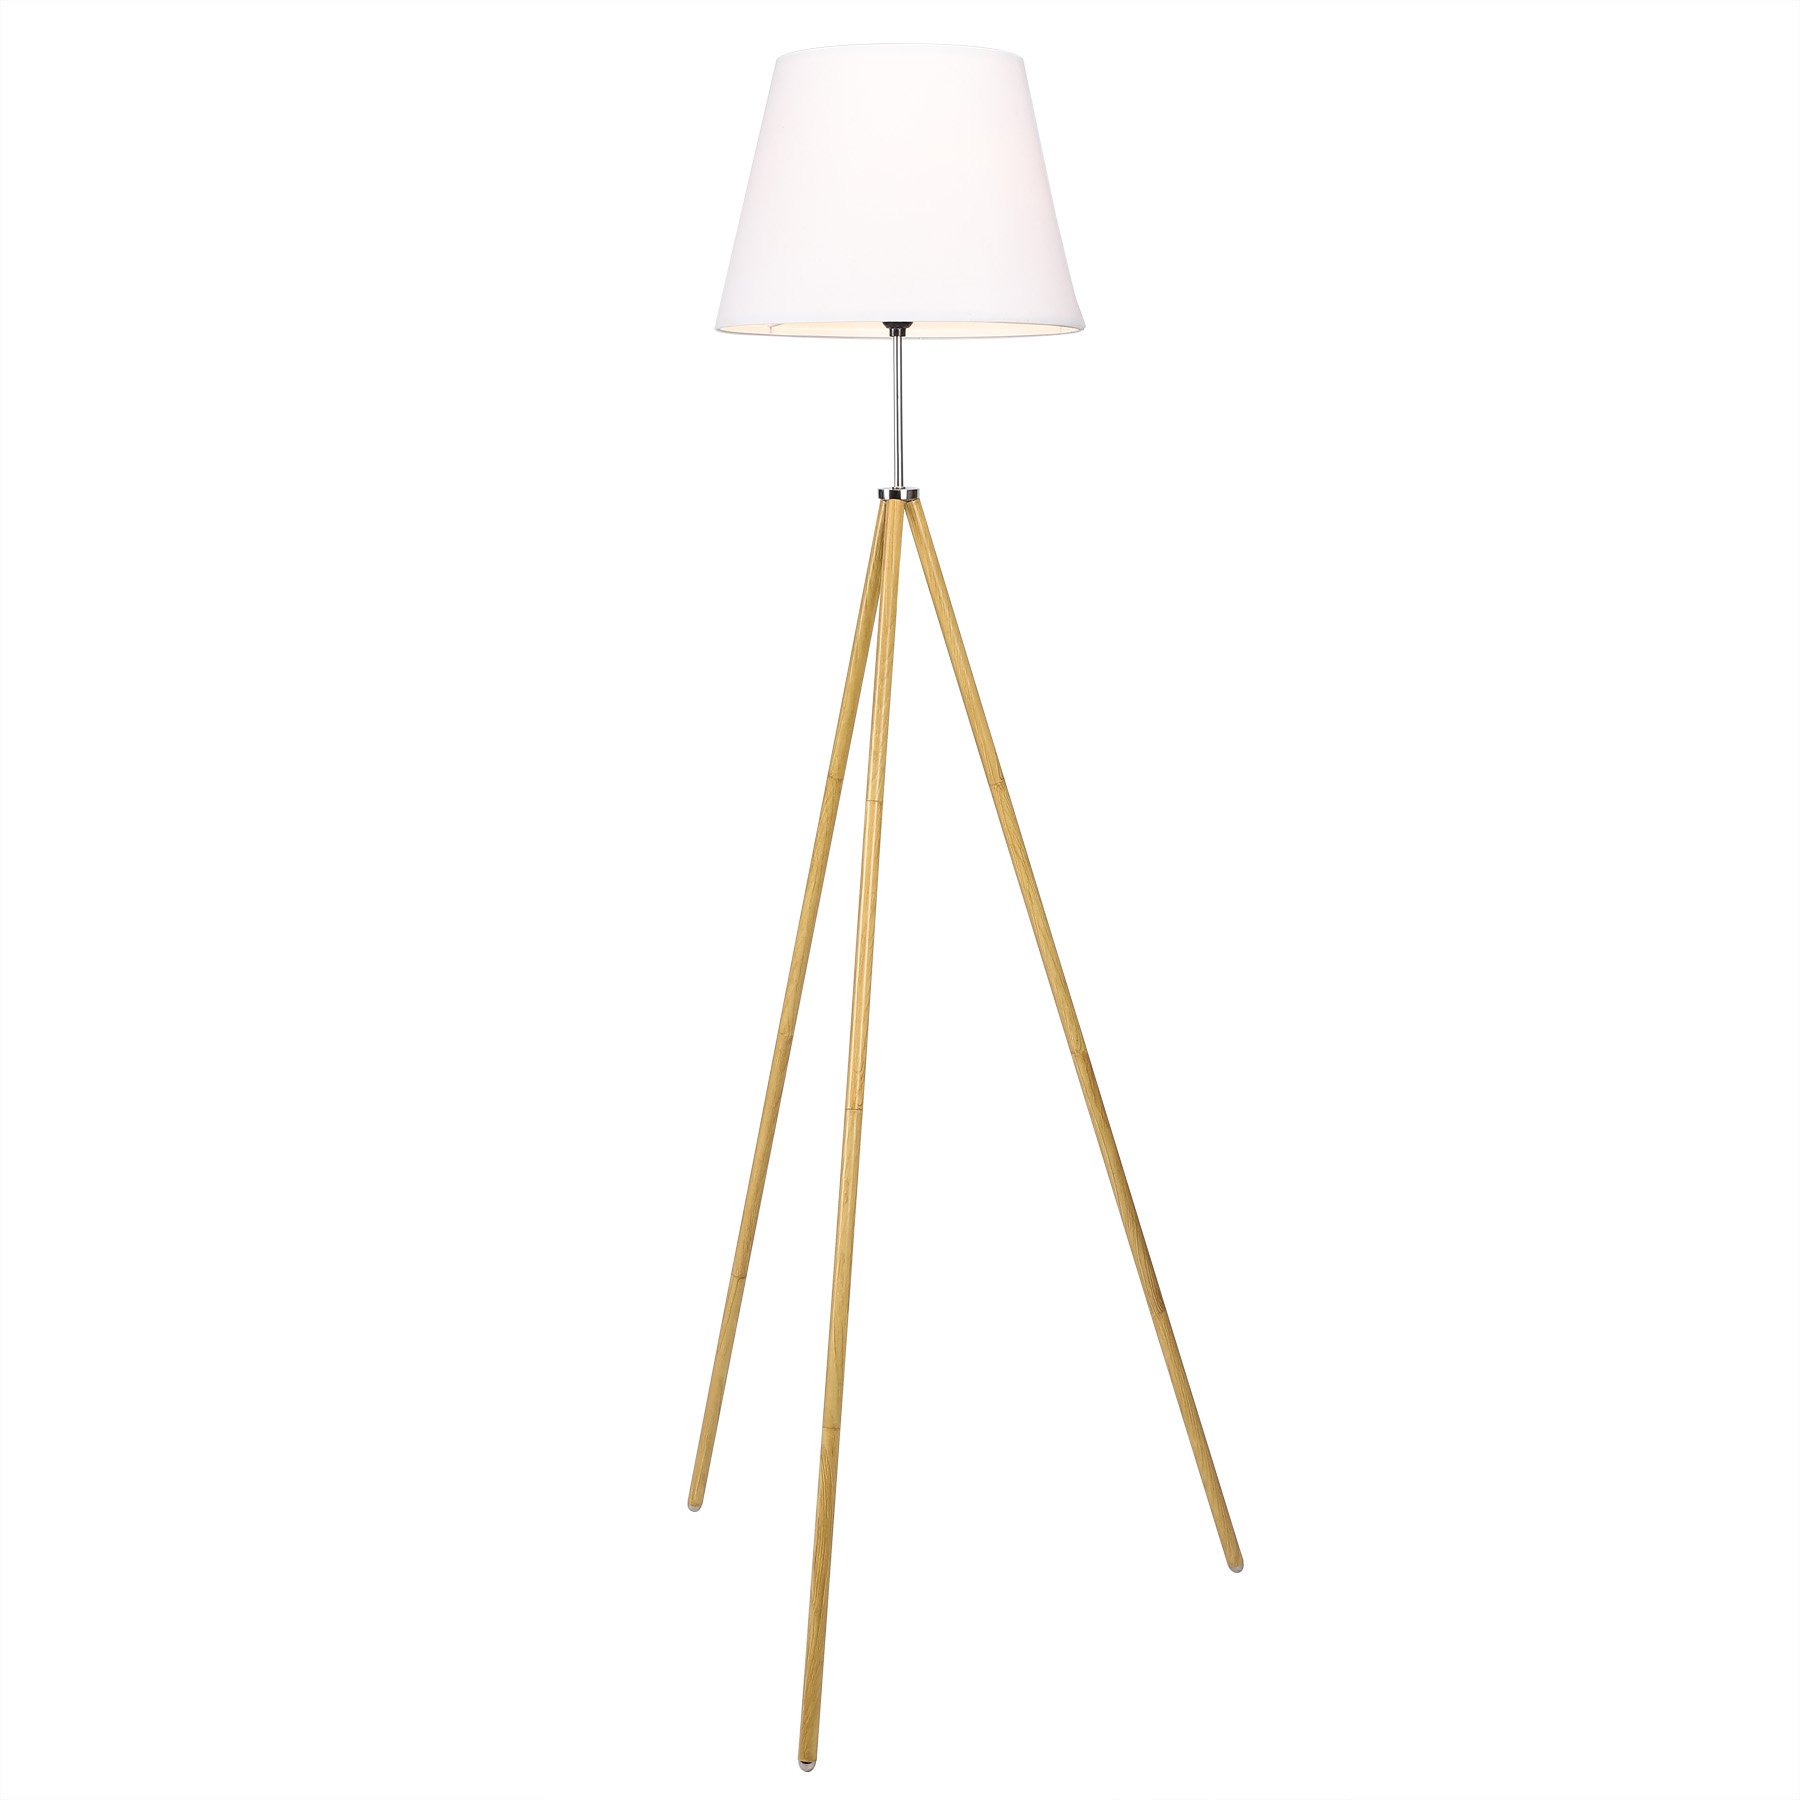 CO-Z 63'' Wood Tripod Floor Lamp, Modern Standing Lamp with Foldable White Fabric Shade & Foot Operated Switch, for Living Room, Family Room, Bedroom, Office